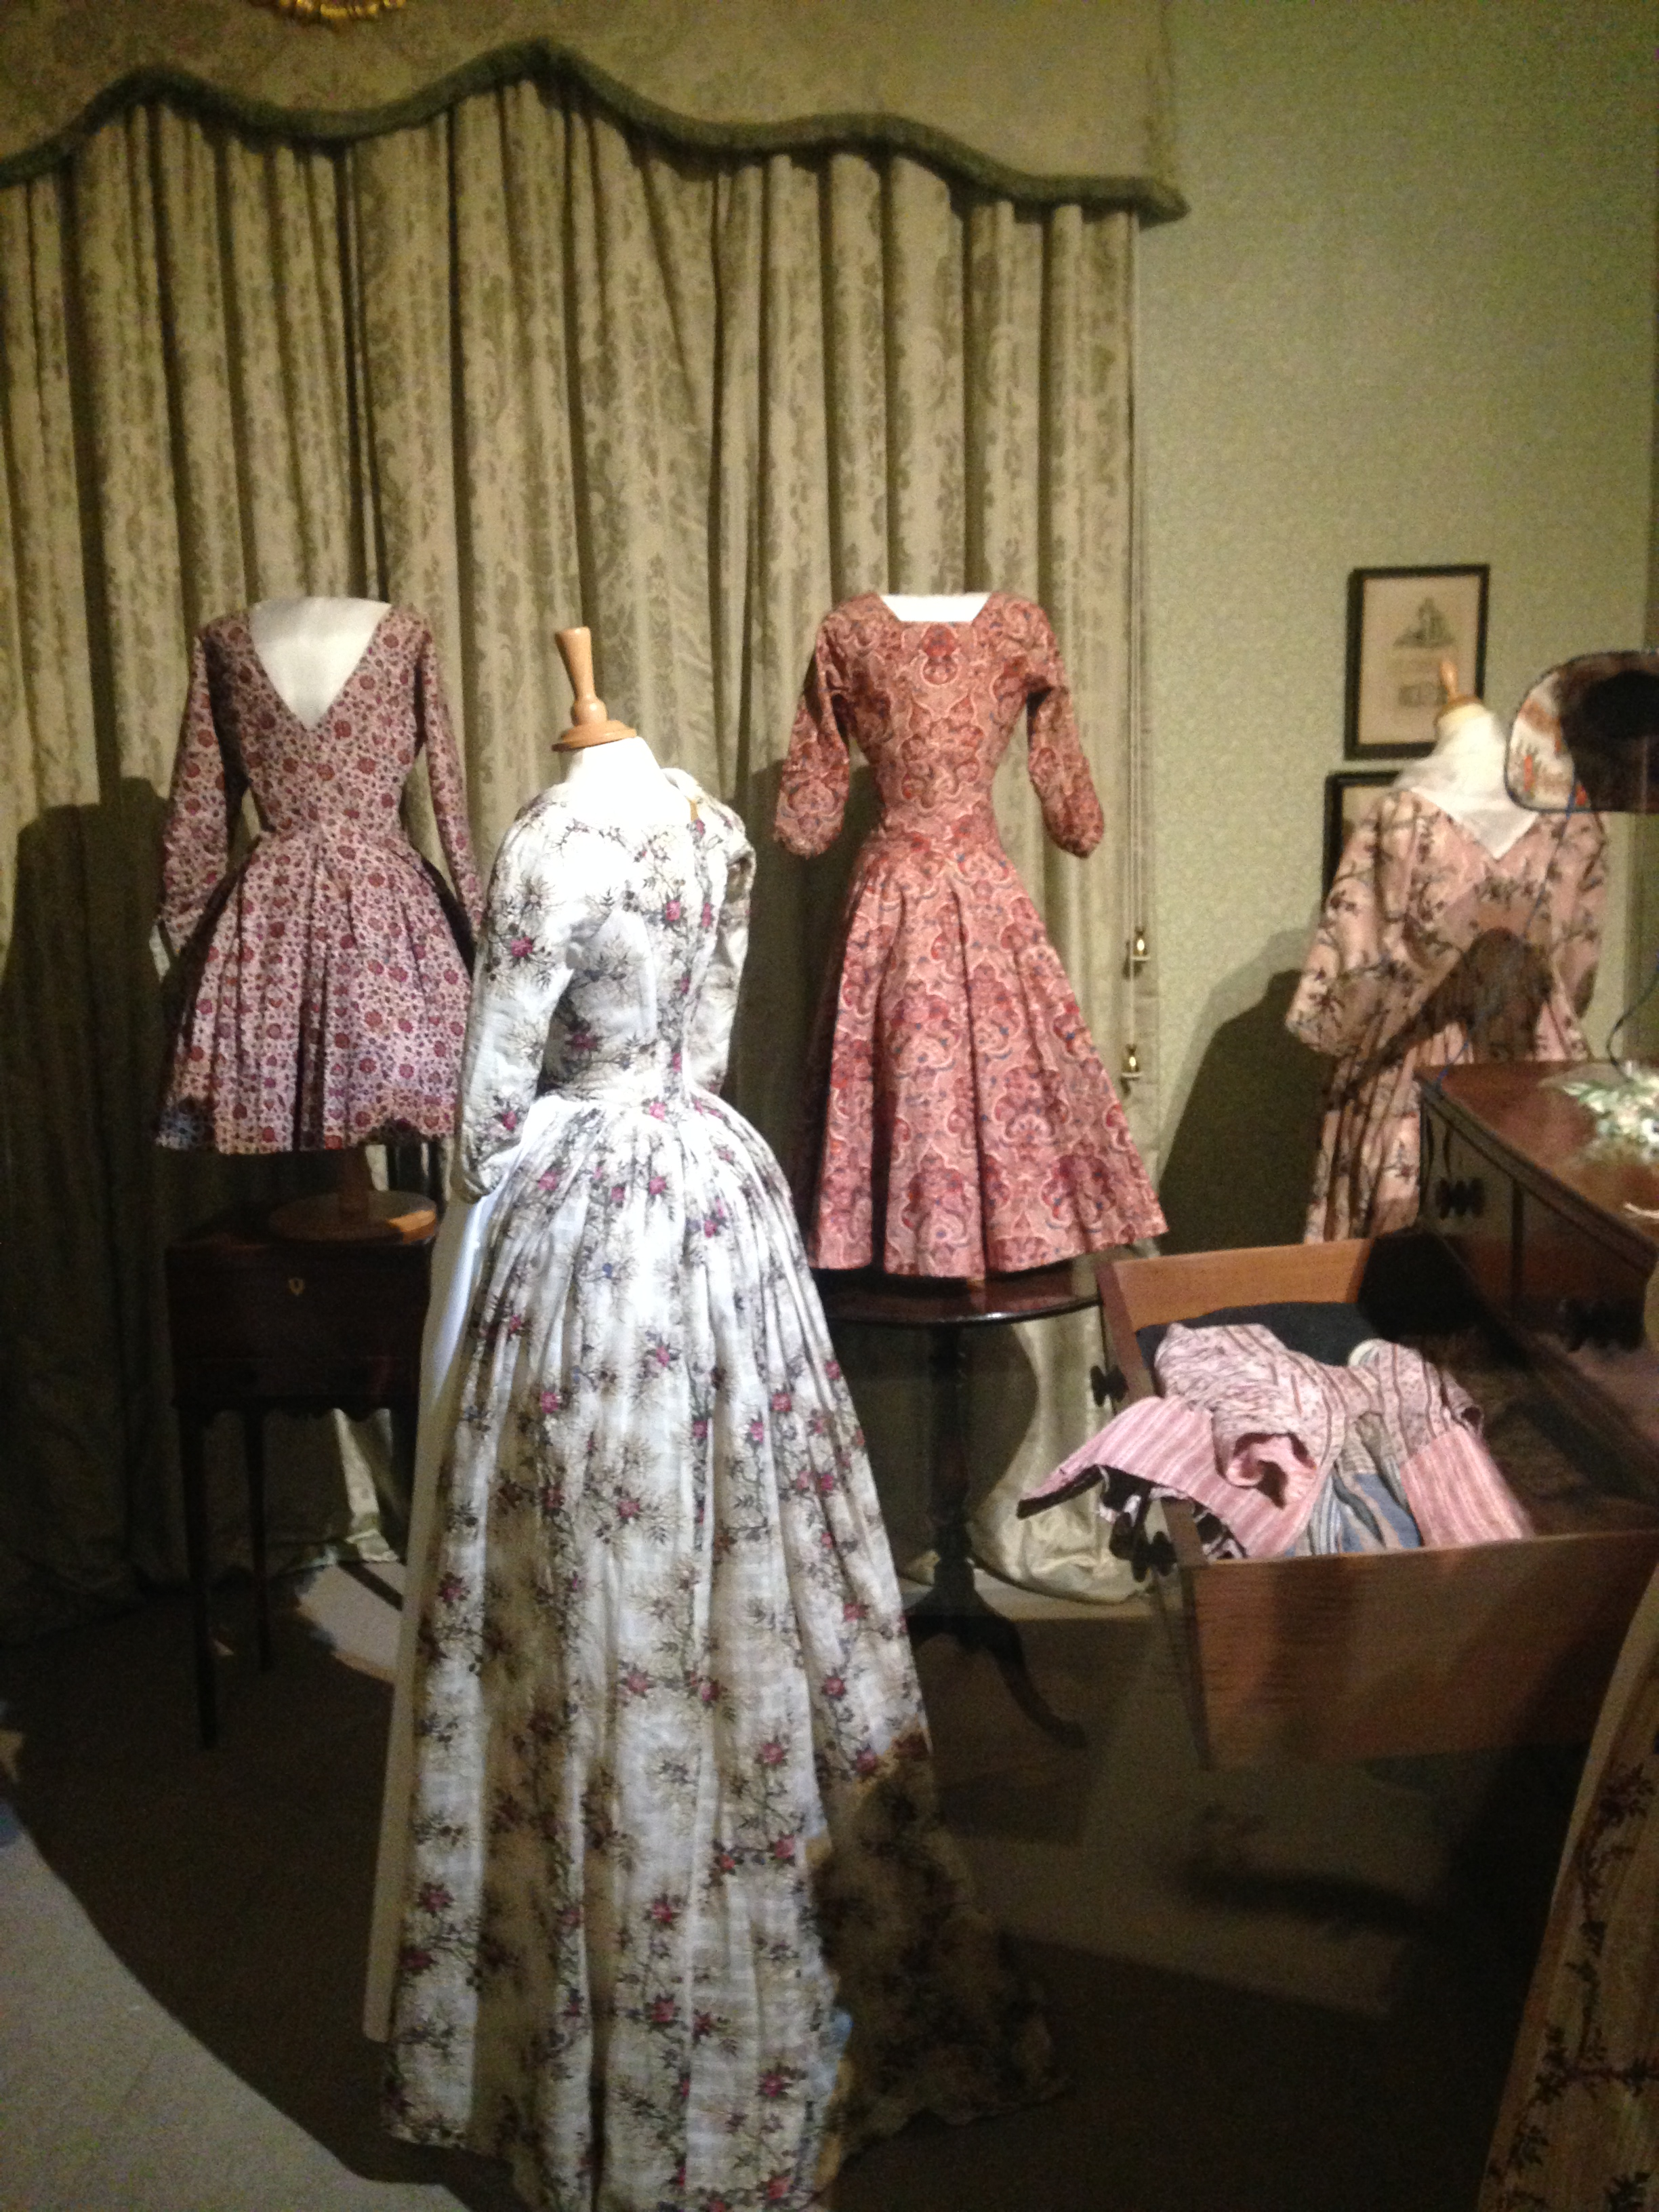 Costumes from a national collection